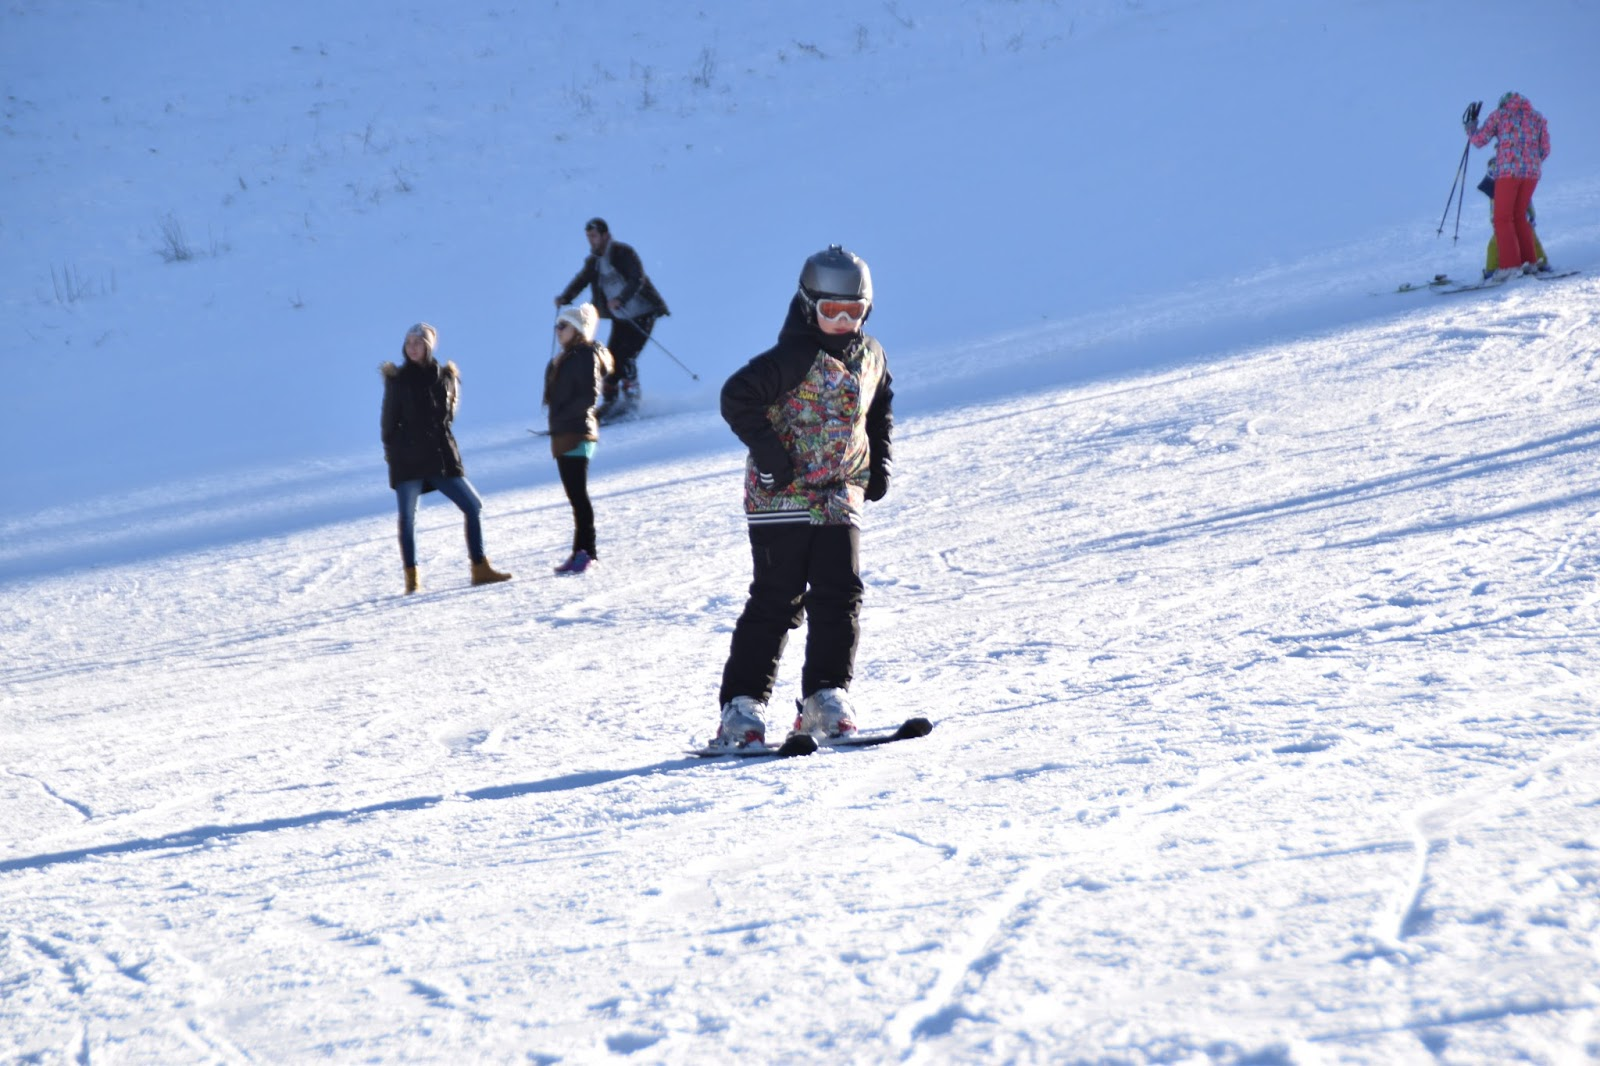 Children at Bansko Ski Resort Runs